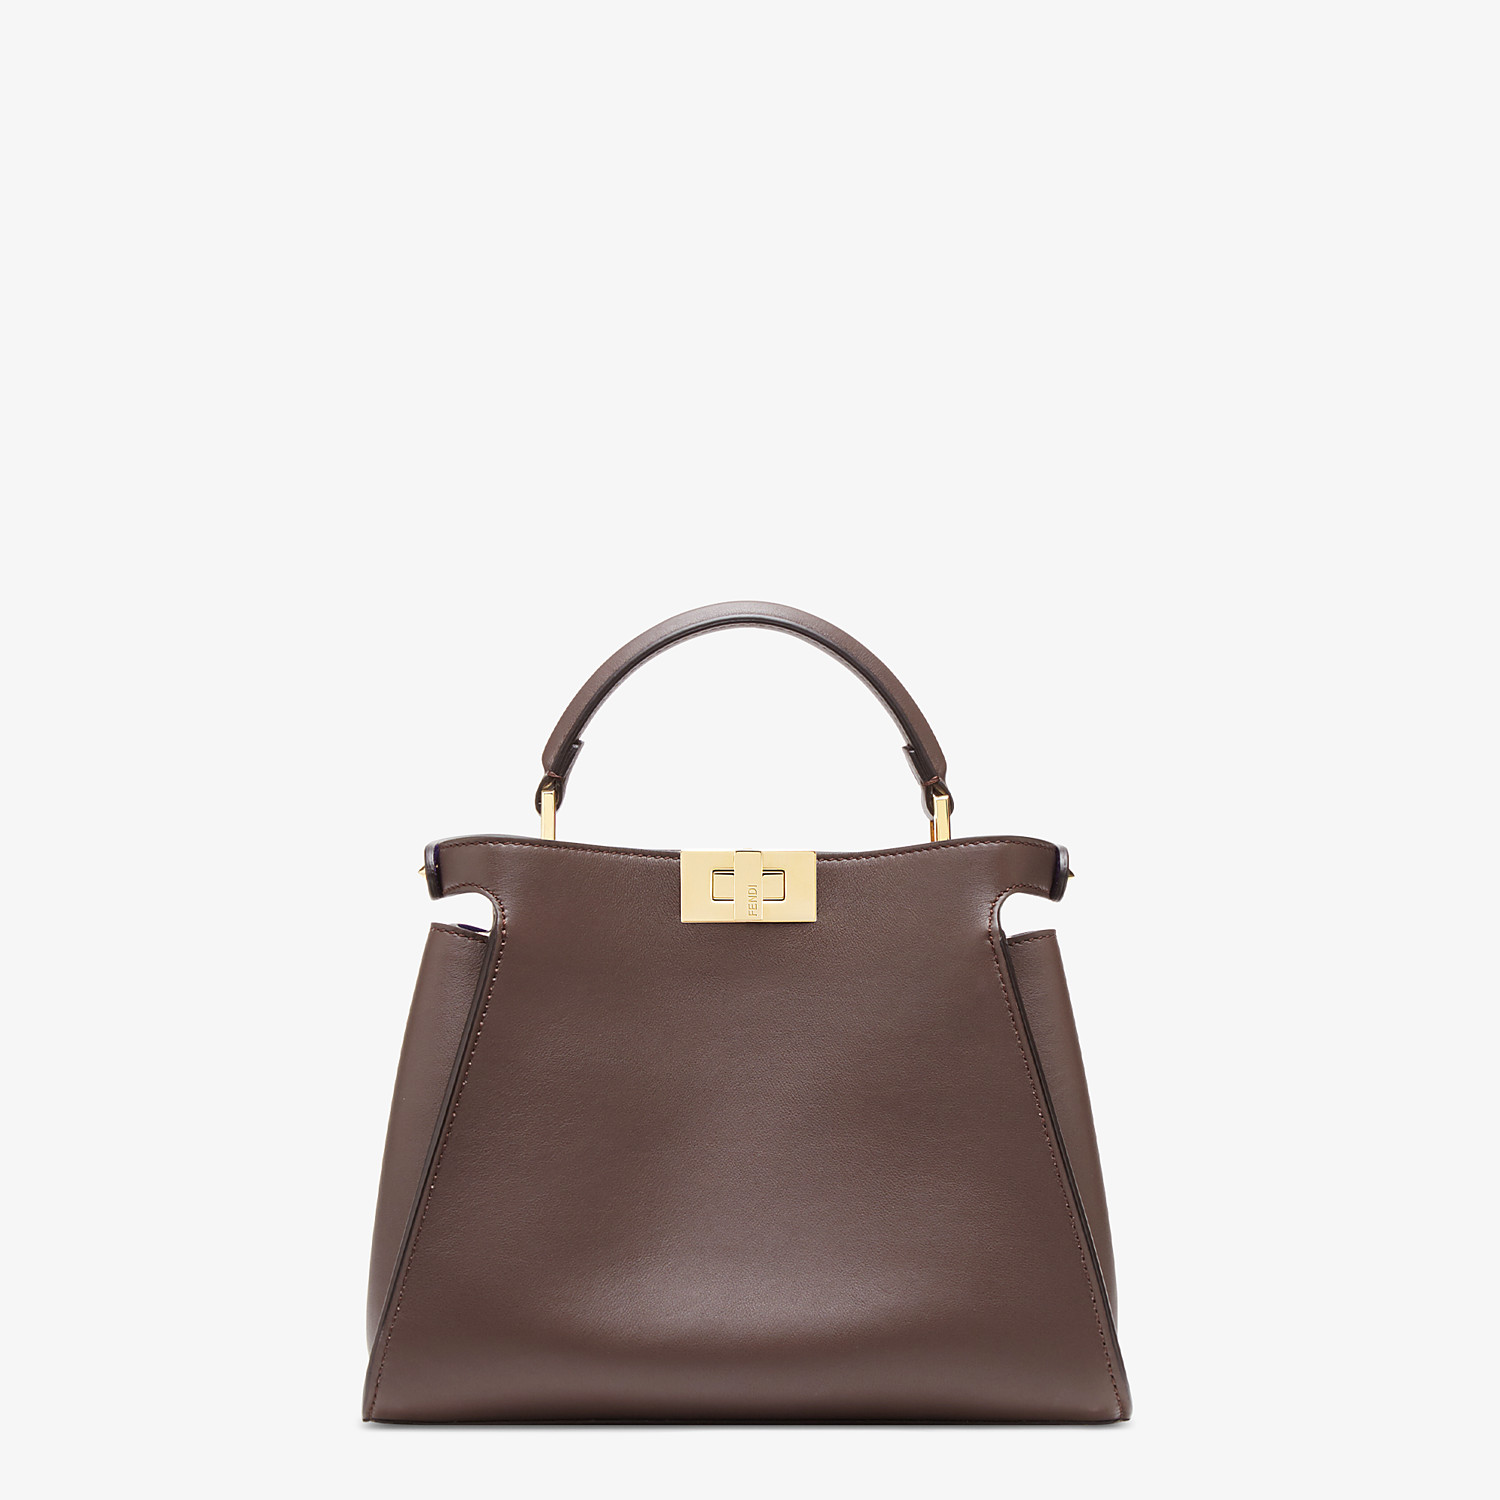 FENDI PEEKABOO ICONIC ESSENTIALLY - Brown leather bag - view 4 detail